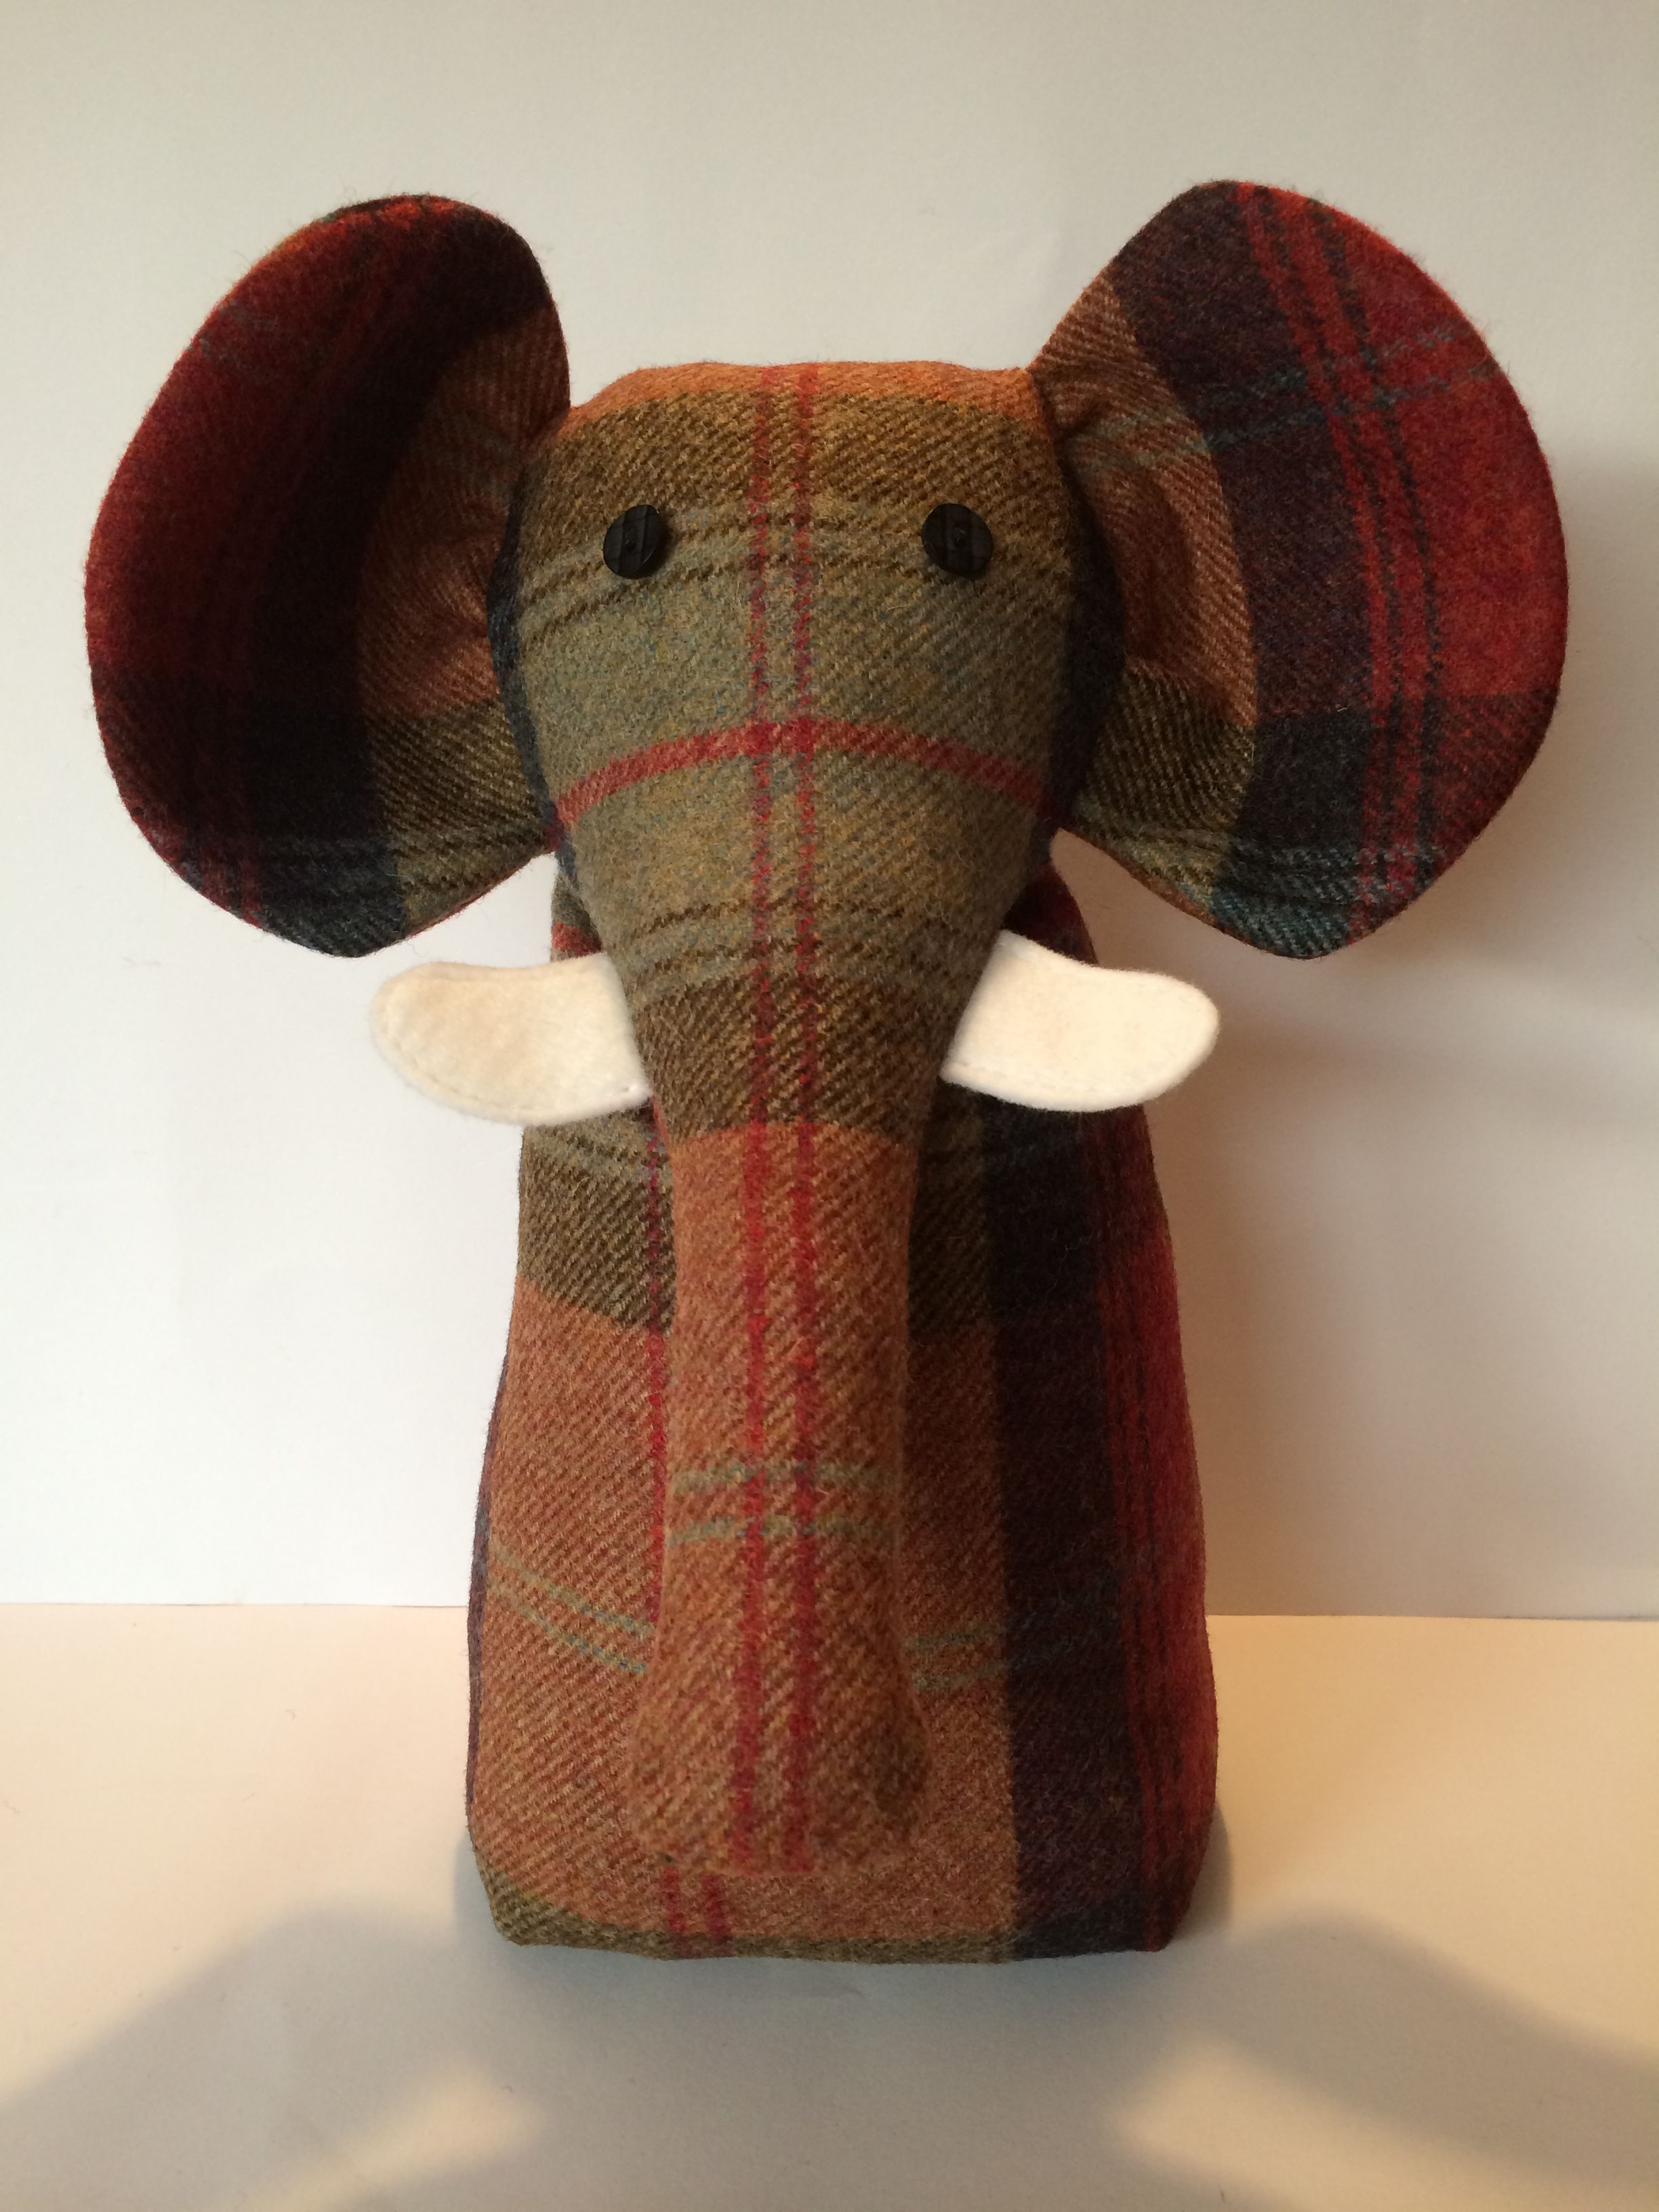 Tweed fabric elephant door stop exclusively designed for Door stop idea